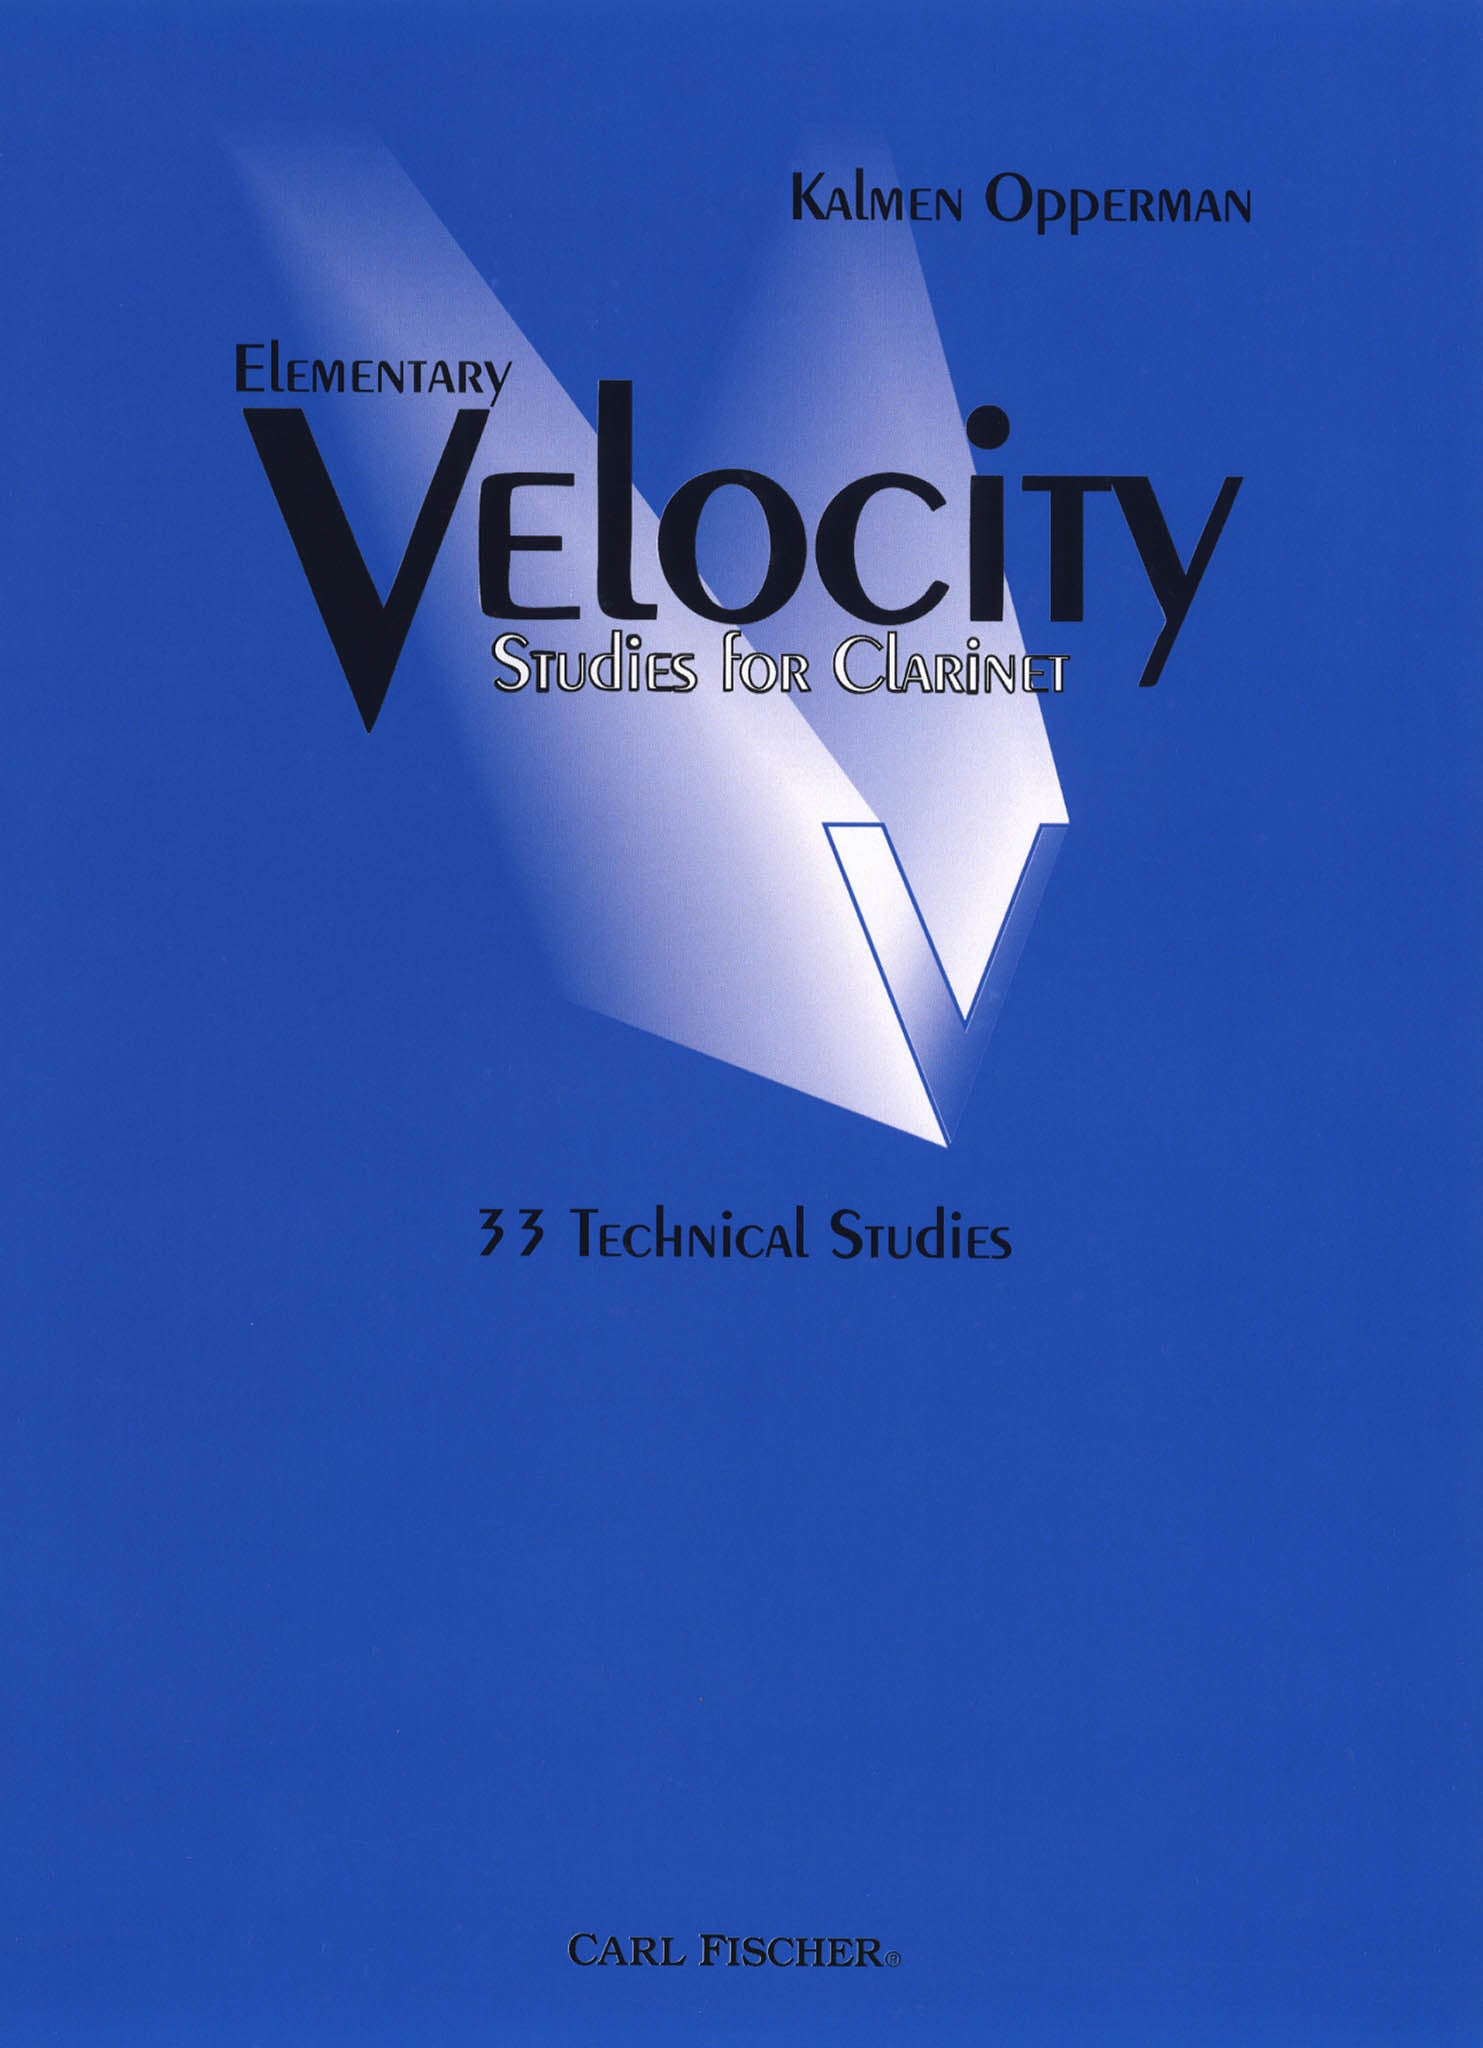 Elementary Velocity Studies for Clarinet Cover